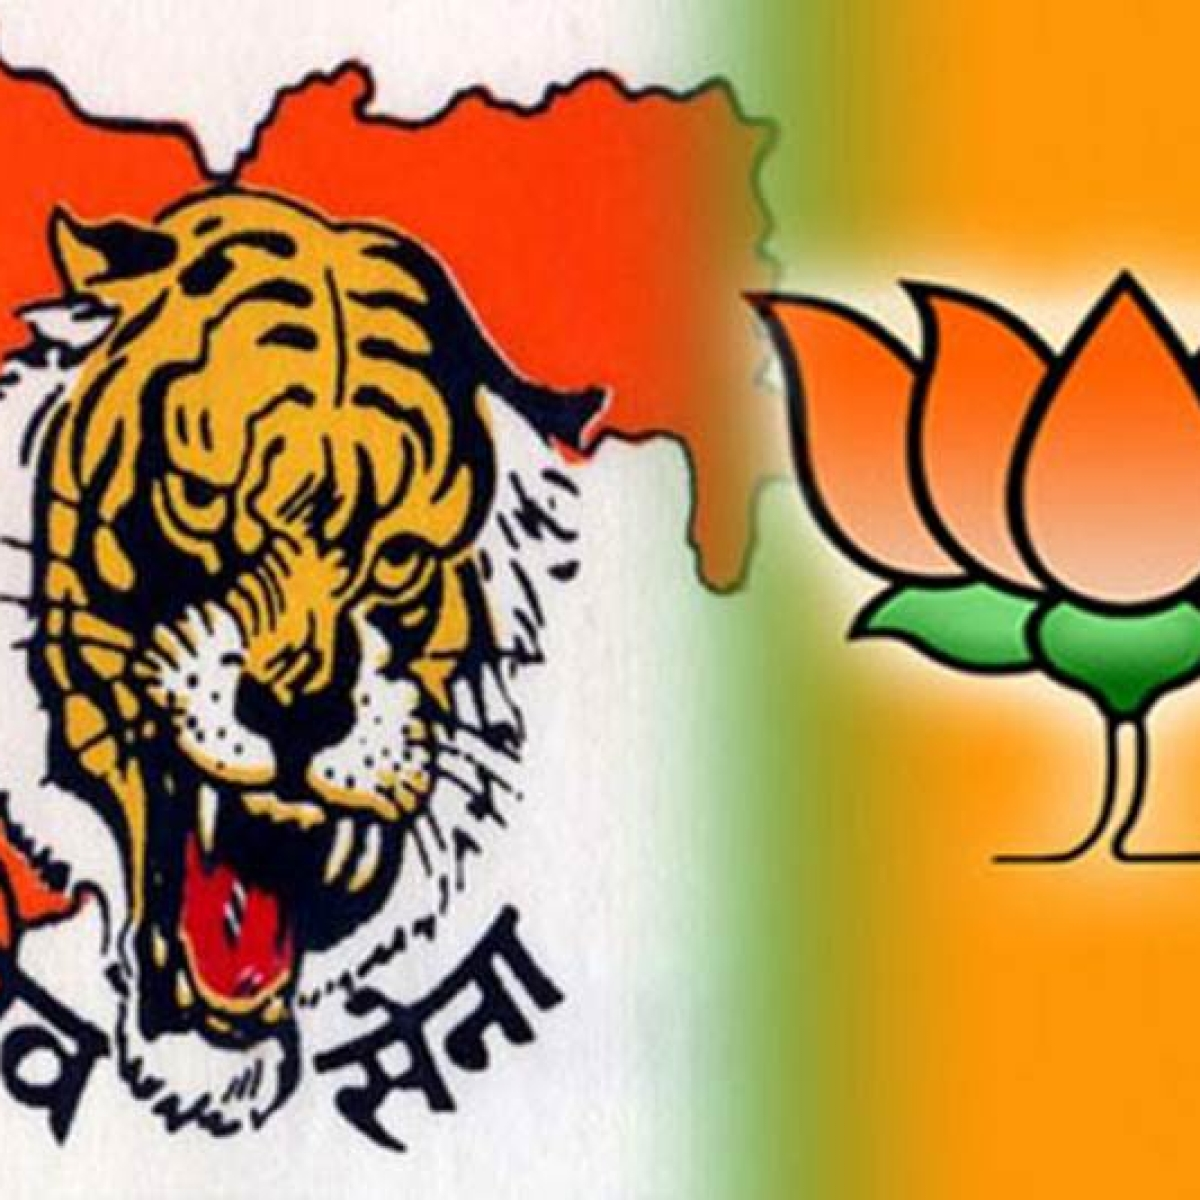 BJP accuses Shiv Sena of 'double standards' on issue of Ram Temple